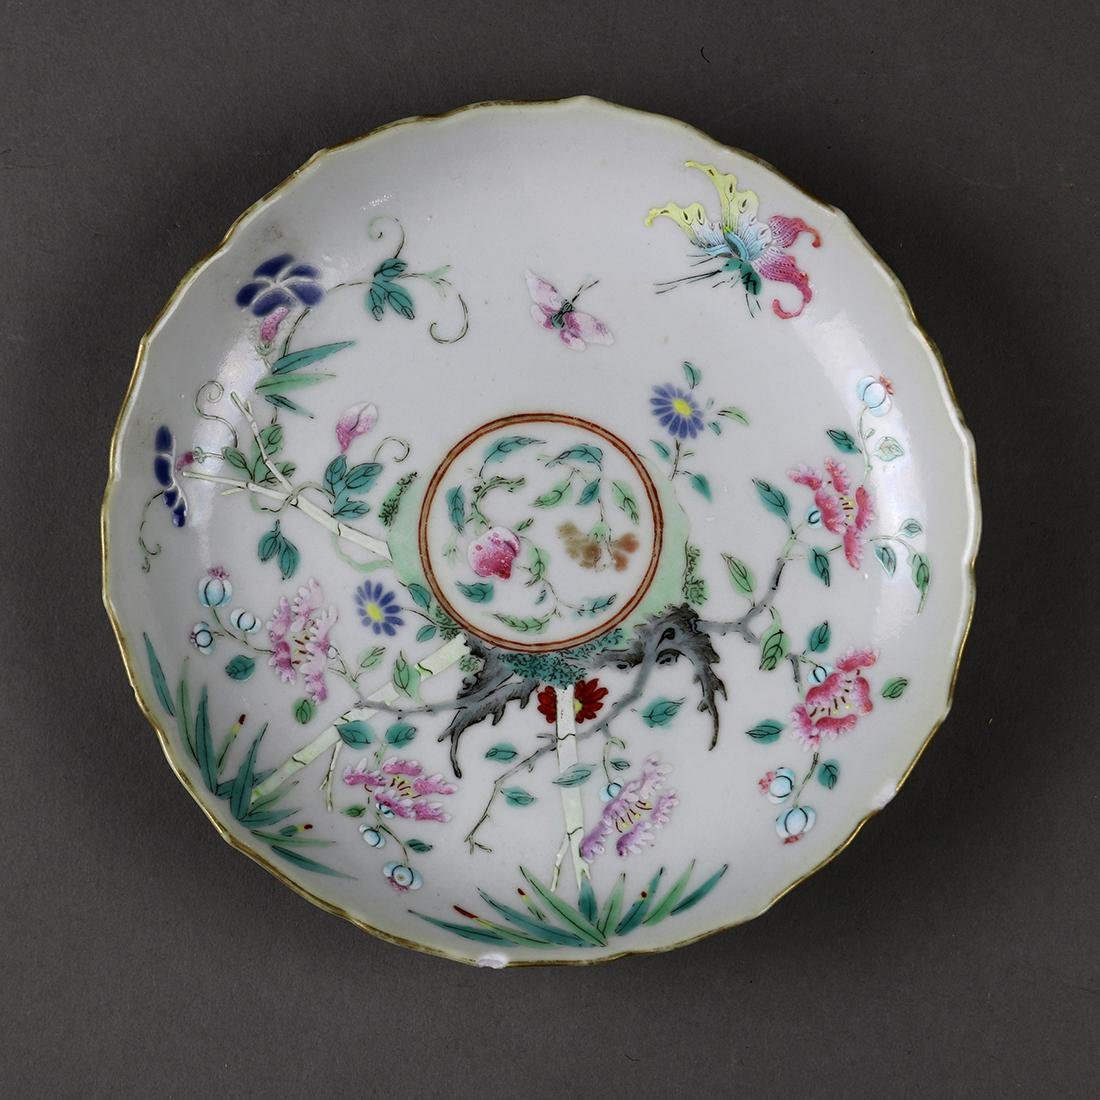 Chinese Porcelain Plate, Flowers